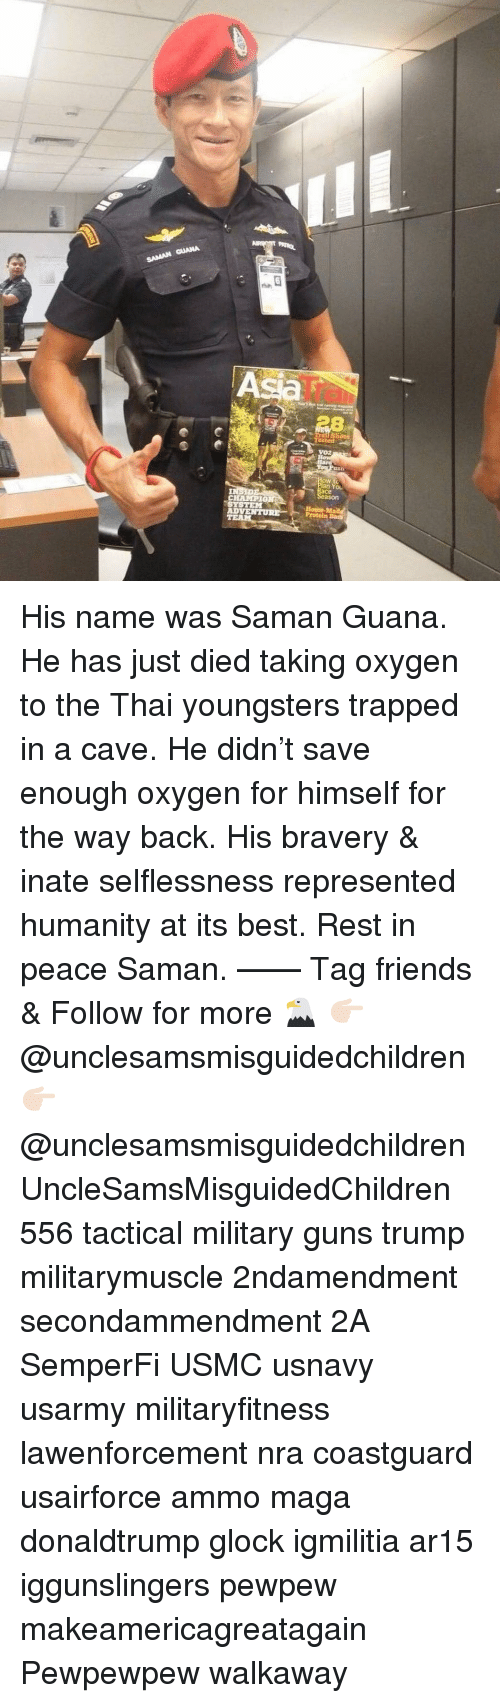 the way back: An  IT  VOZ  n You  ace  ason  CHAMPIO  AD His name was Saman Guana. He has just died taking oxygen to the Thai youngsters trapped in a cave. He didn't save enough oxygen for himself for the way back. His bravery & inate selflessness represented humanity at its best. Rest in peace Saman. —— Tag friends & Follow for more 🦅 👉🏻 @unclesamsmisguidedchildren 👉🏻 @unclesamsmisguidedchildren UncleSamsMisguidedChildren 556 tactical military guns trump militarymuscle 2ndamendment secondammendment 2A SemperFi USMC usnavy usarmy militaryfitness lawenforcement nra coastguard usairforce ammo maga donaldtrump glock igmilitia ar15 iggunslingers pewpew makeamericagreatagain Pewpewpew walkaway